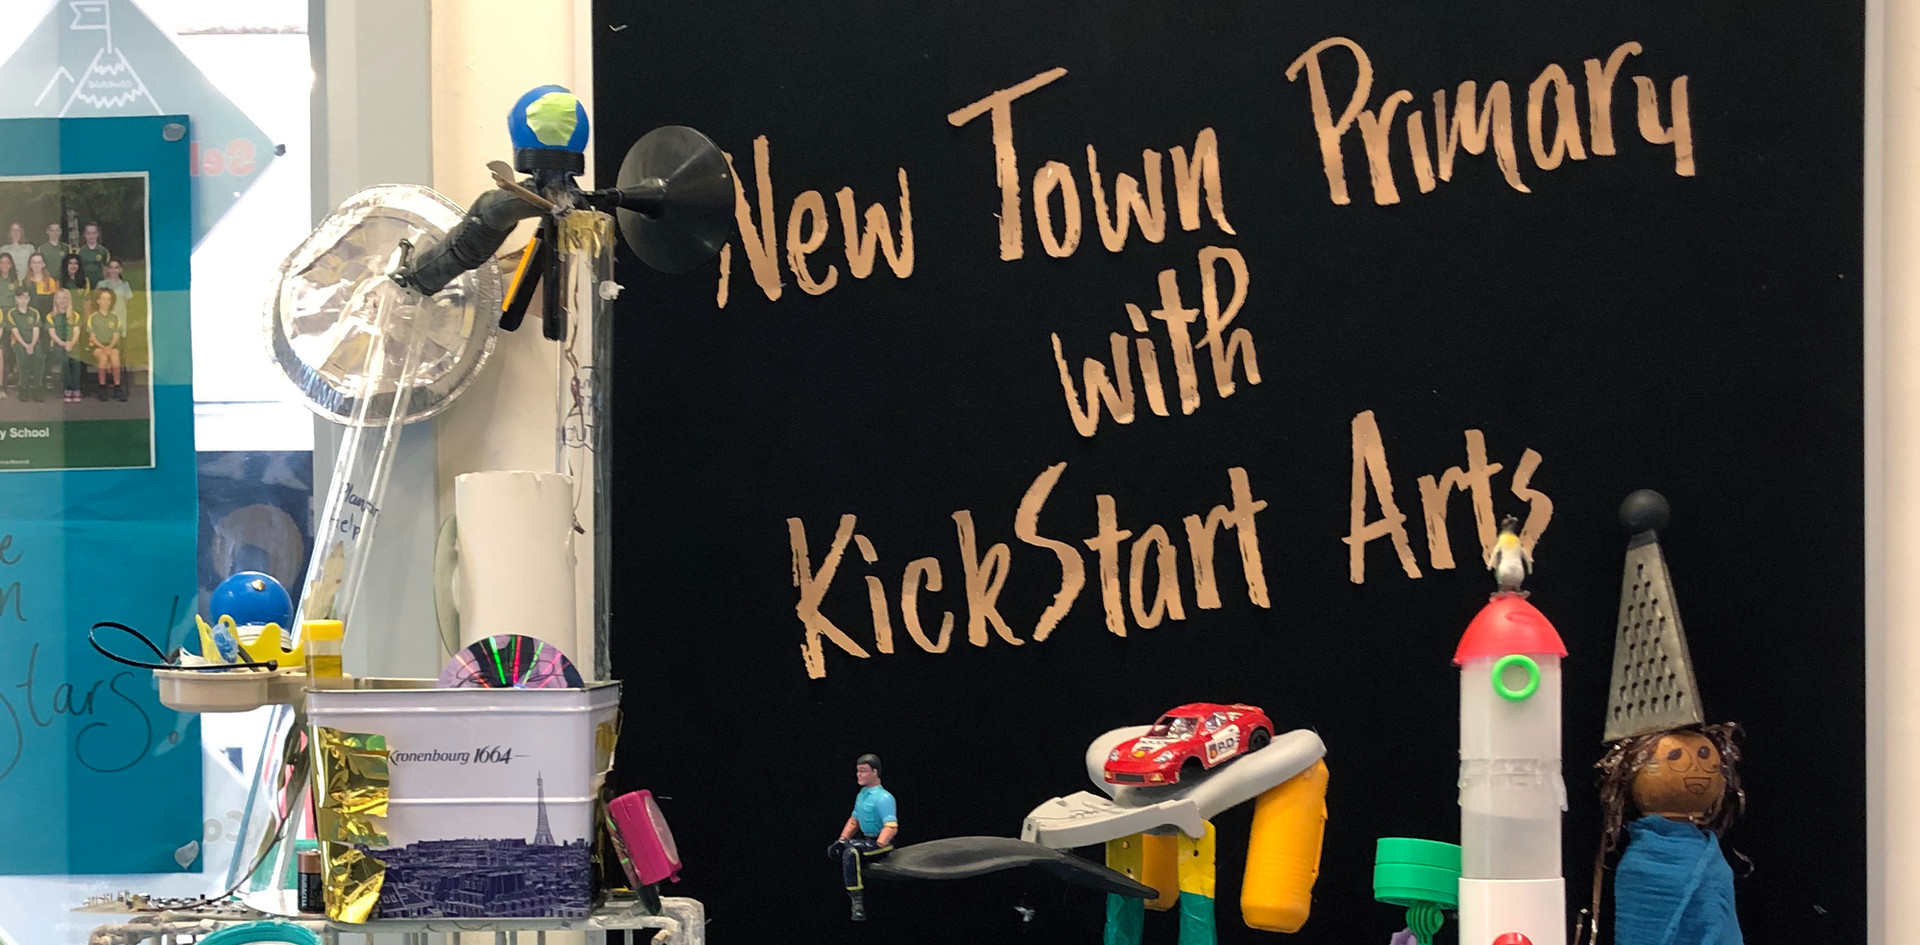 New Town Primary and Kickstart Arts